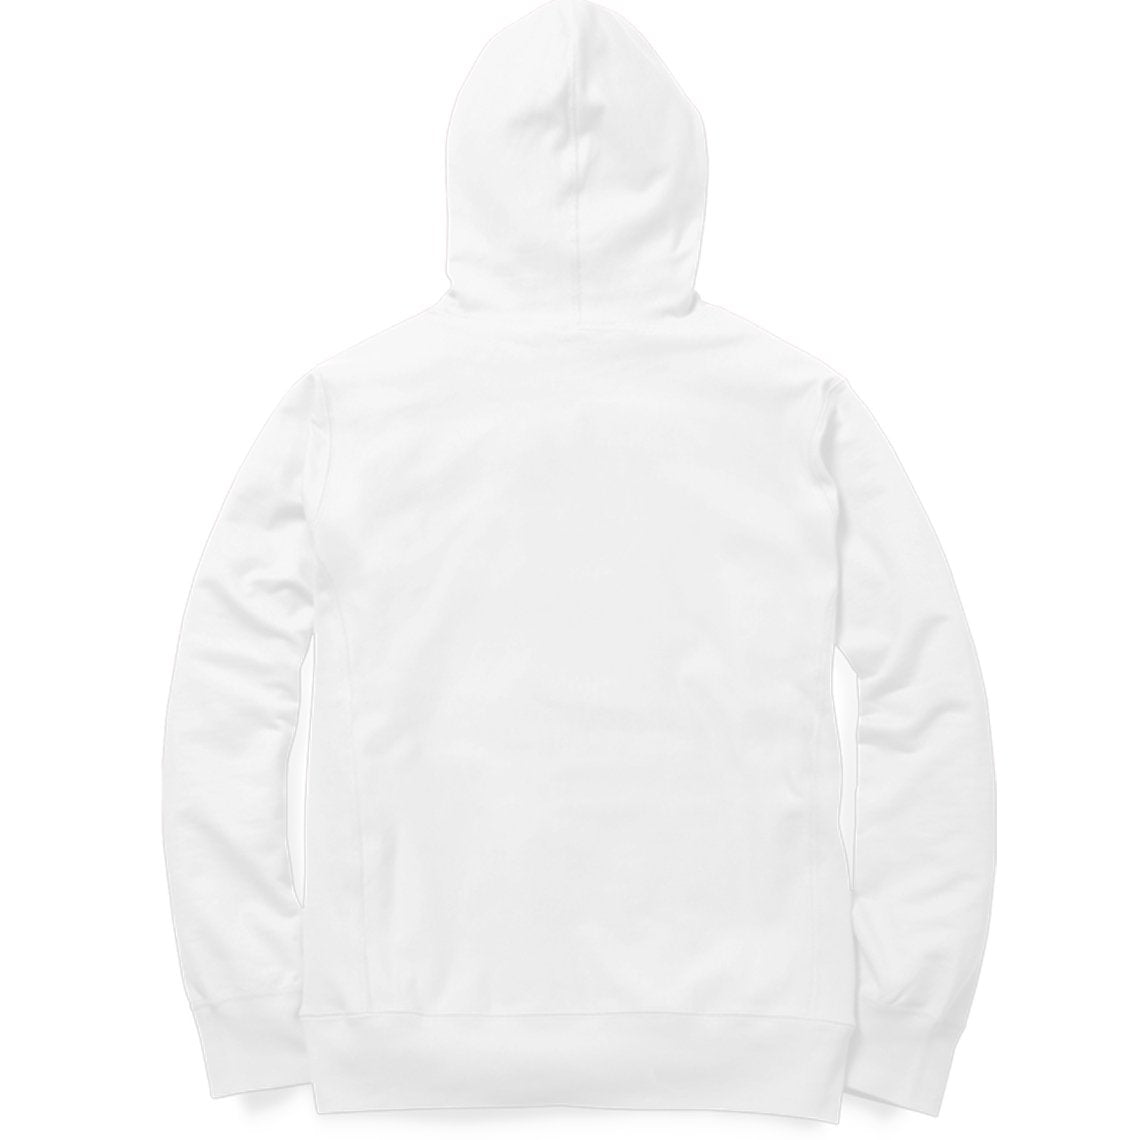 PLAIN WHITE - UNISEX HOODIE - Patch Fusion